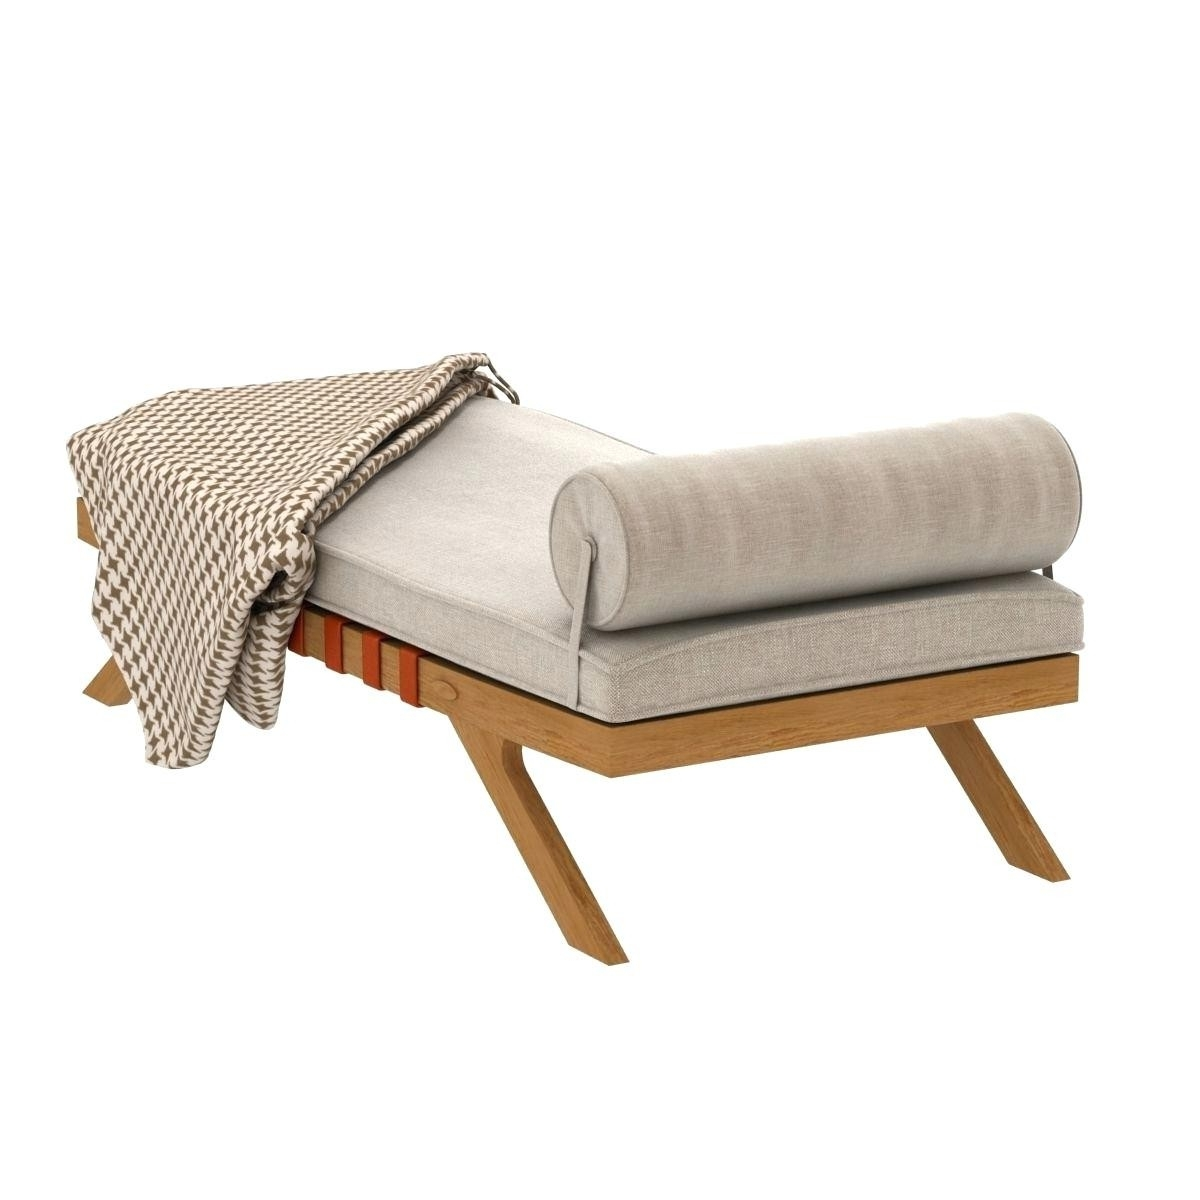 Furniture : History Of Chaise Lounge Ikea Wicker Chaise Lounge Uk Throughout Favorite Chaise Lounge Chairs Under $ (View 8 of 15)